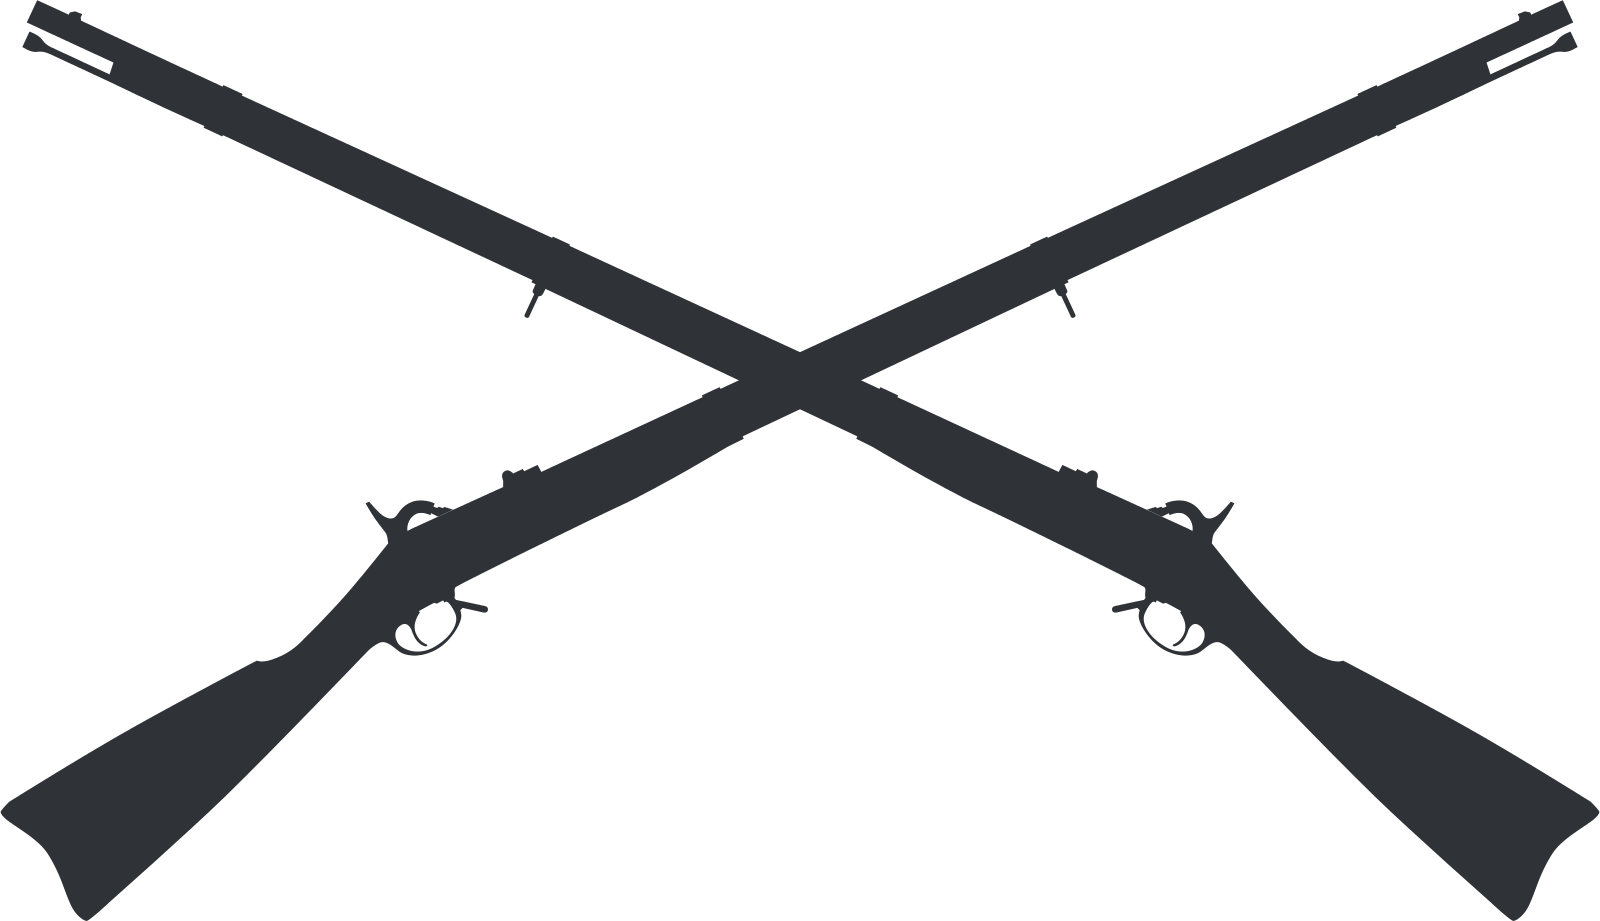 Patriot vector musket. File springfield crossed muskets